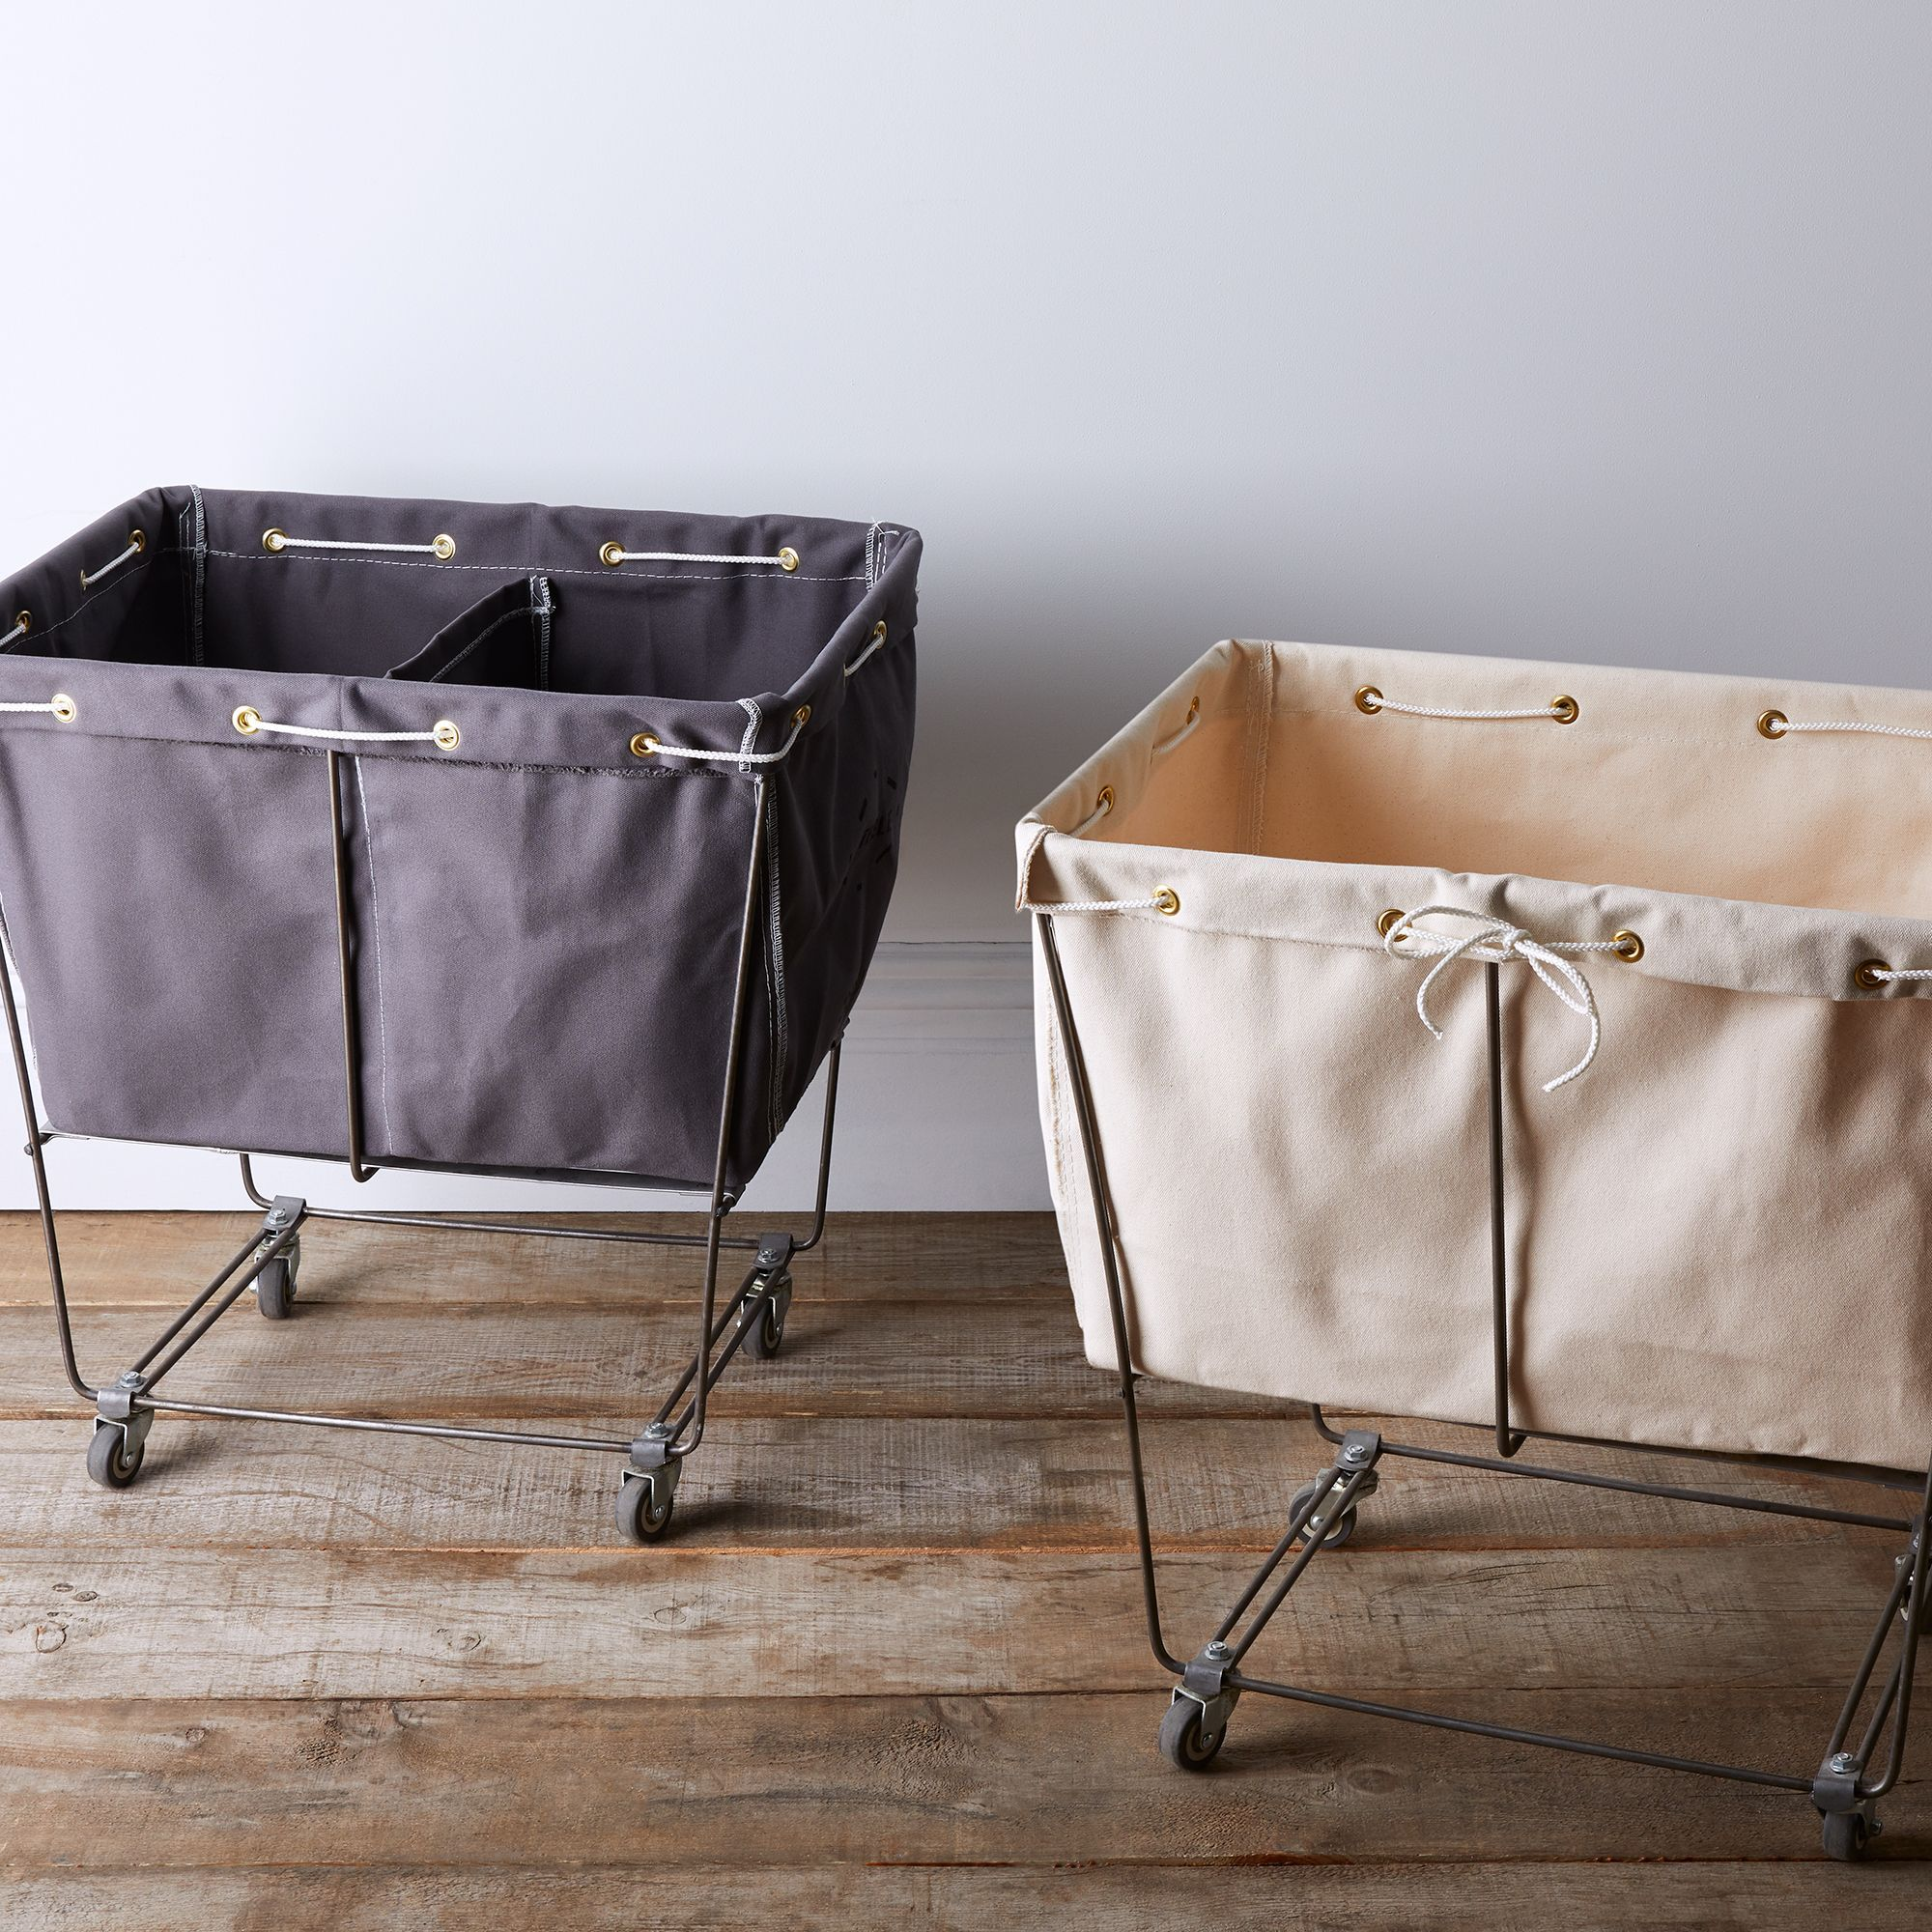 Elevated Laundry Basket Diy Laundry Basket Laundry Hamper